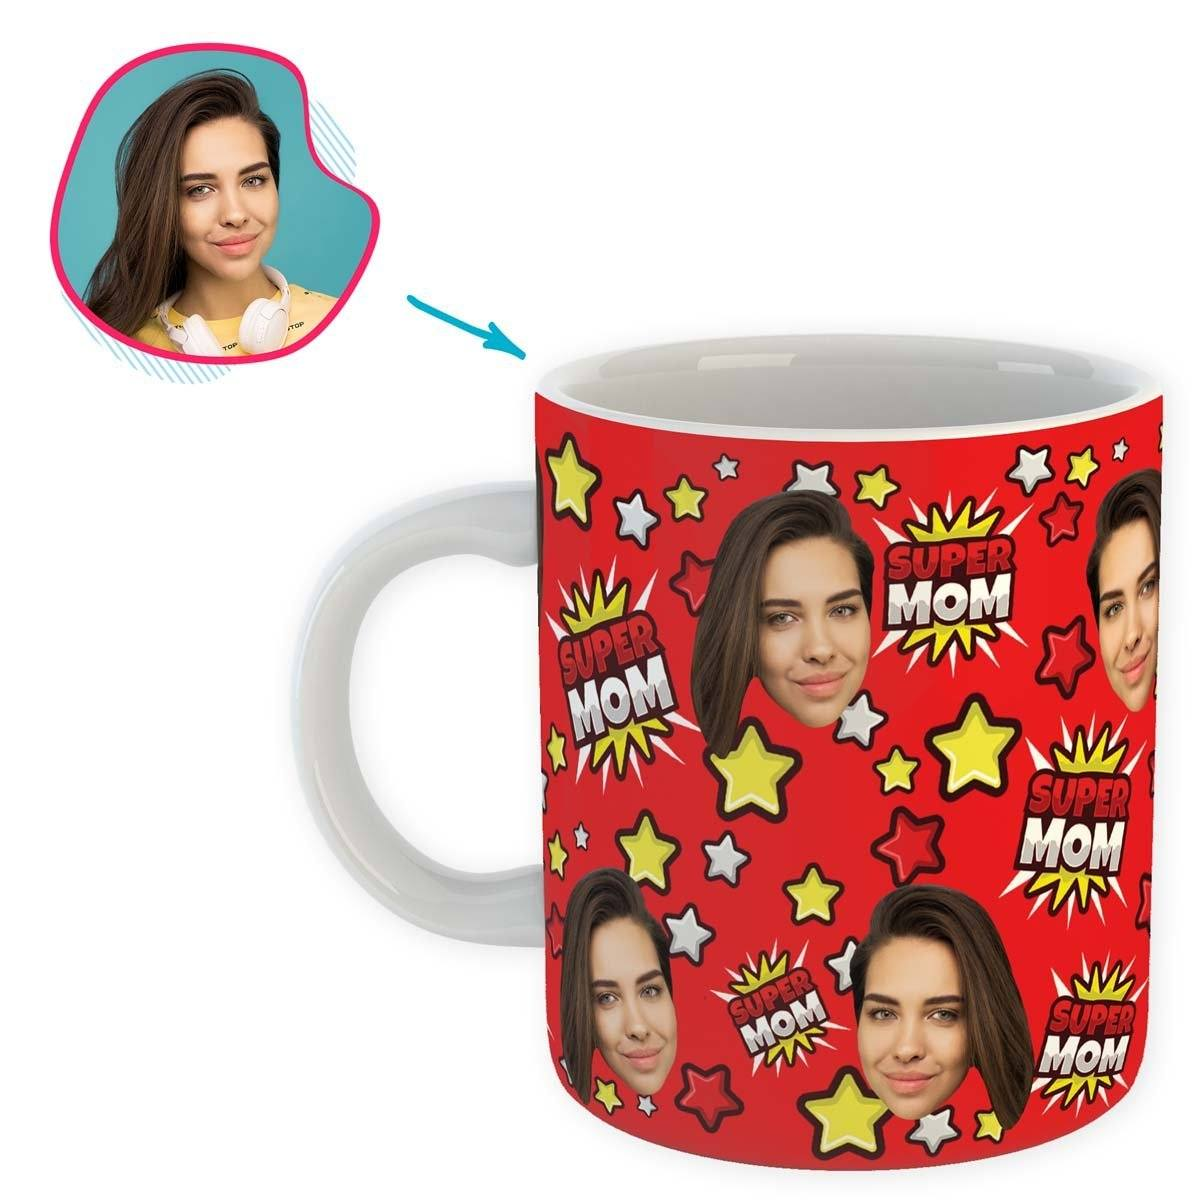 red Super Mom mug personalized with photo of face printed on it